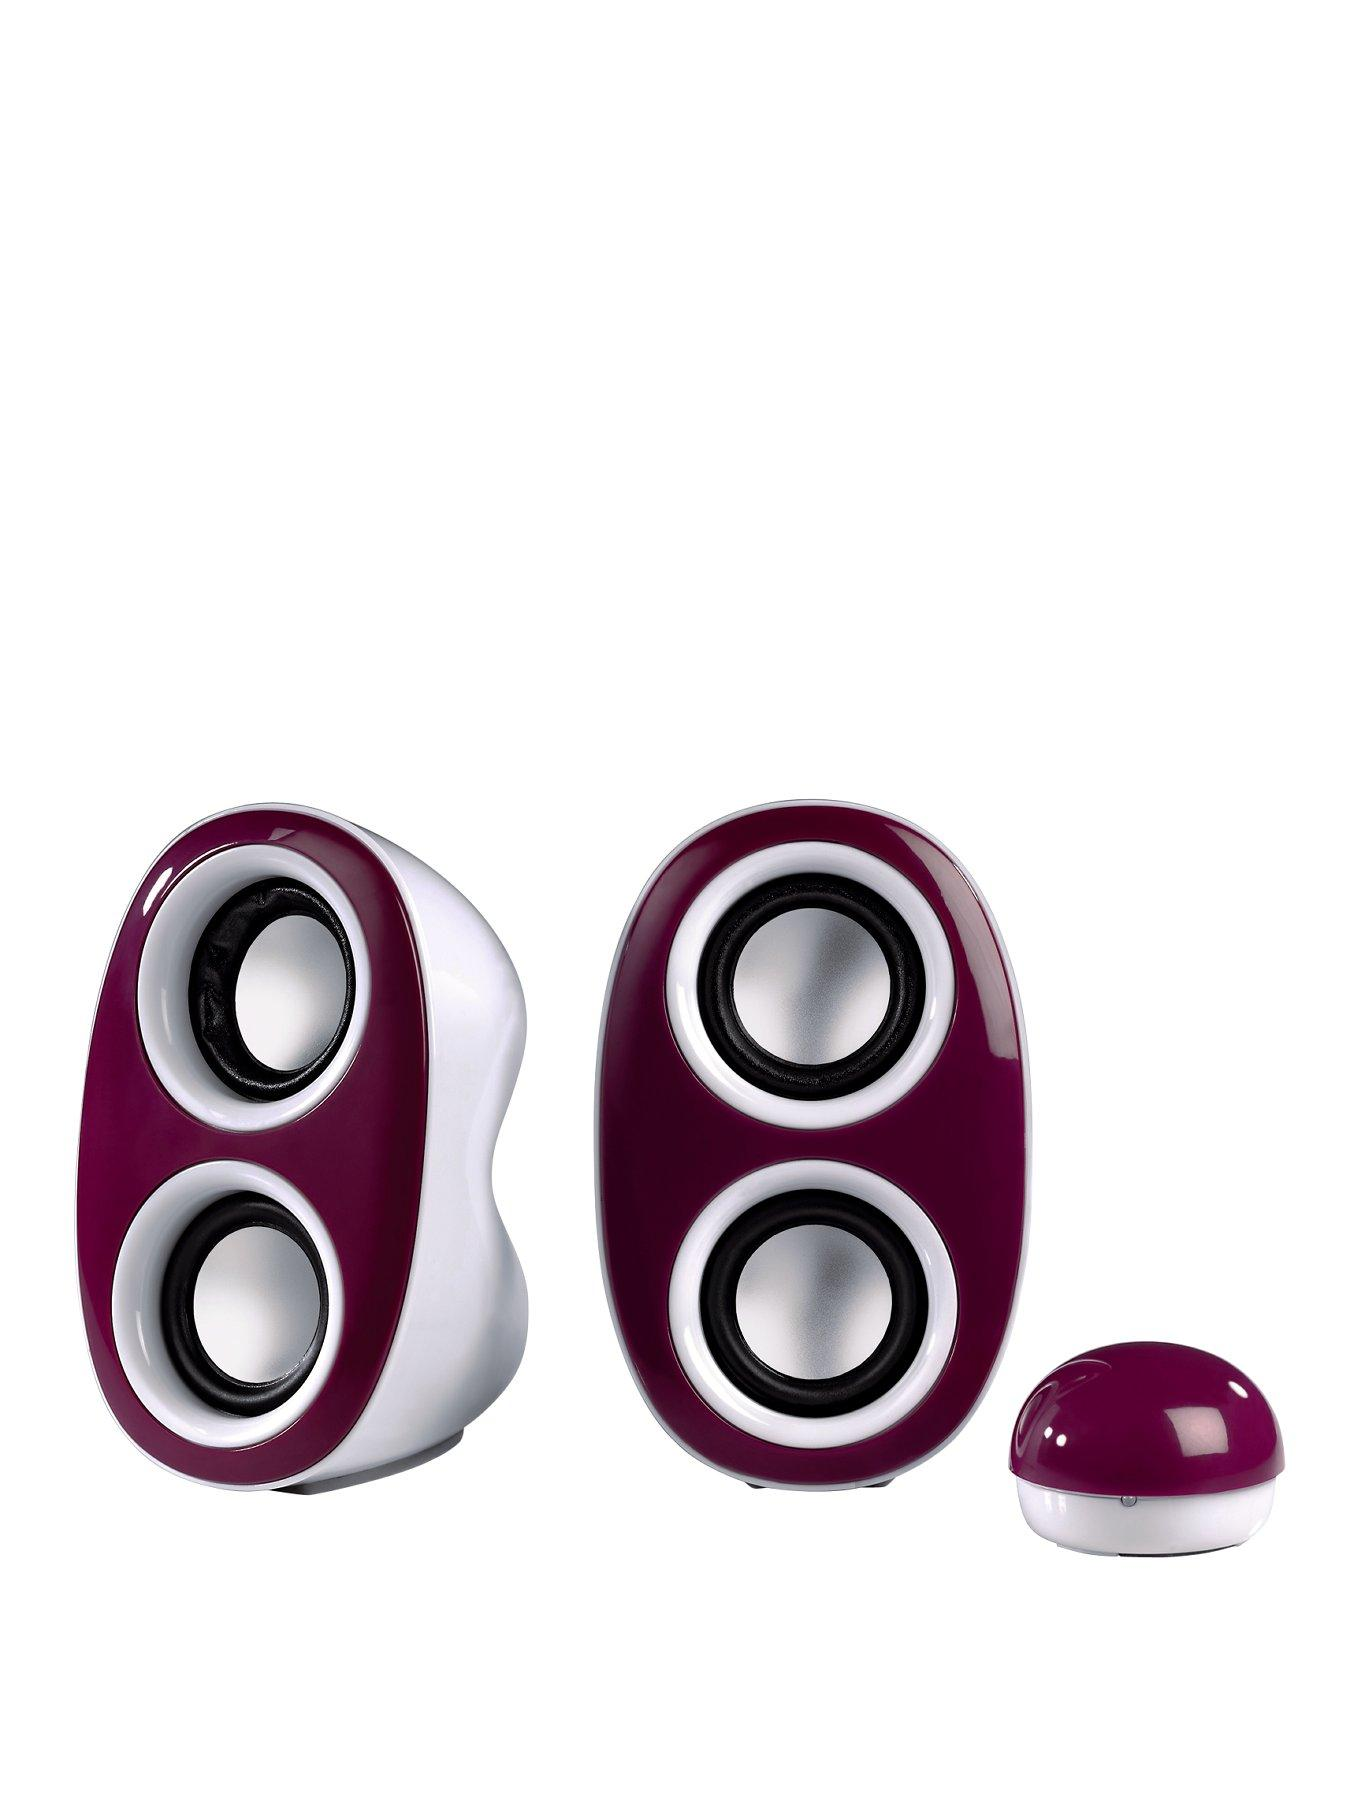 Dispersion Portable PC Speakers - Purple